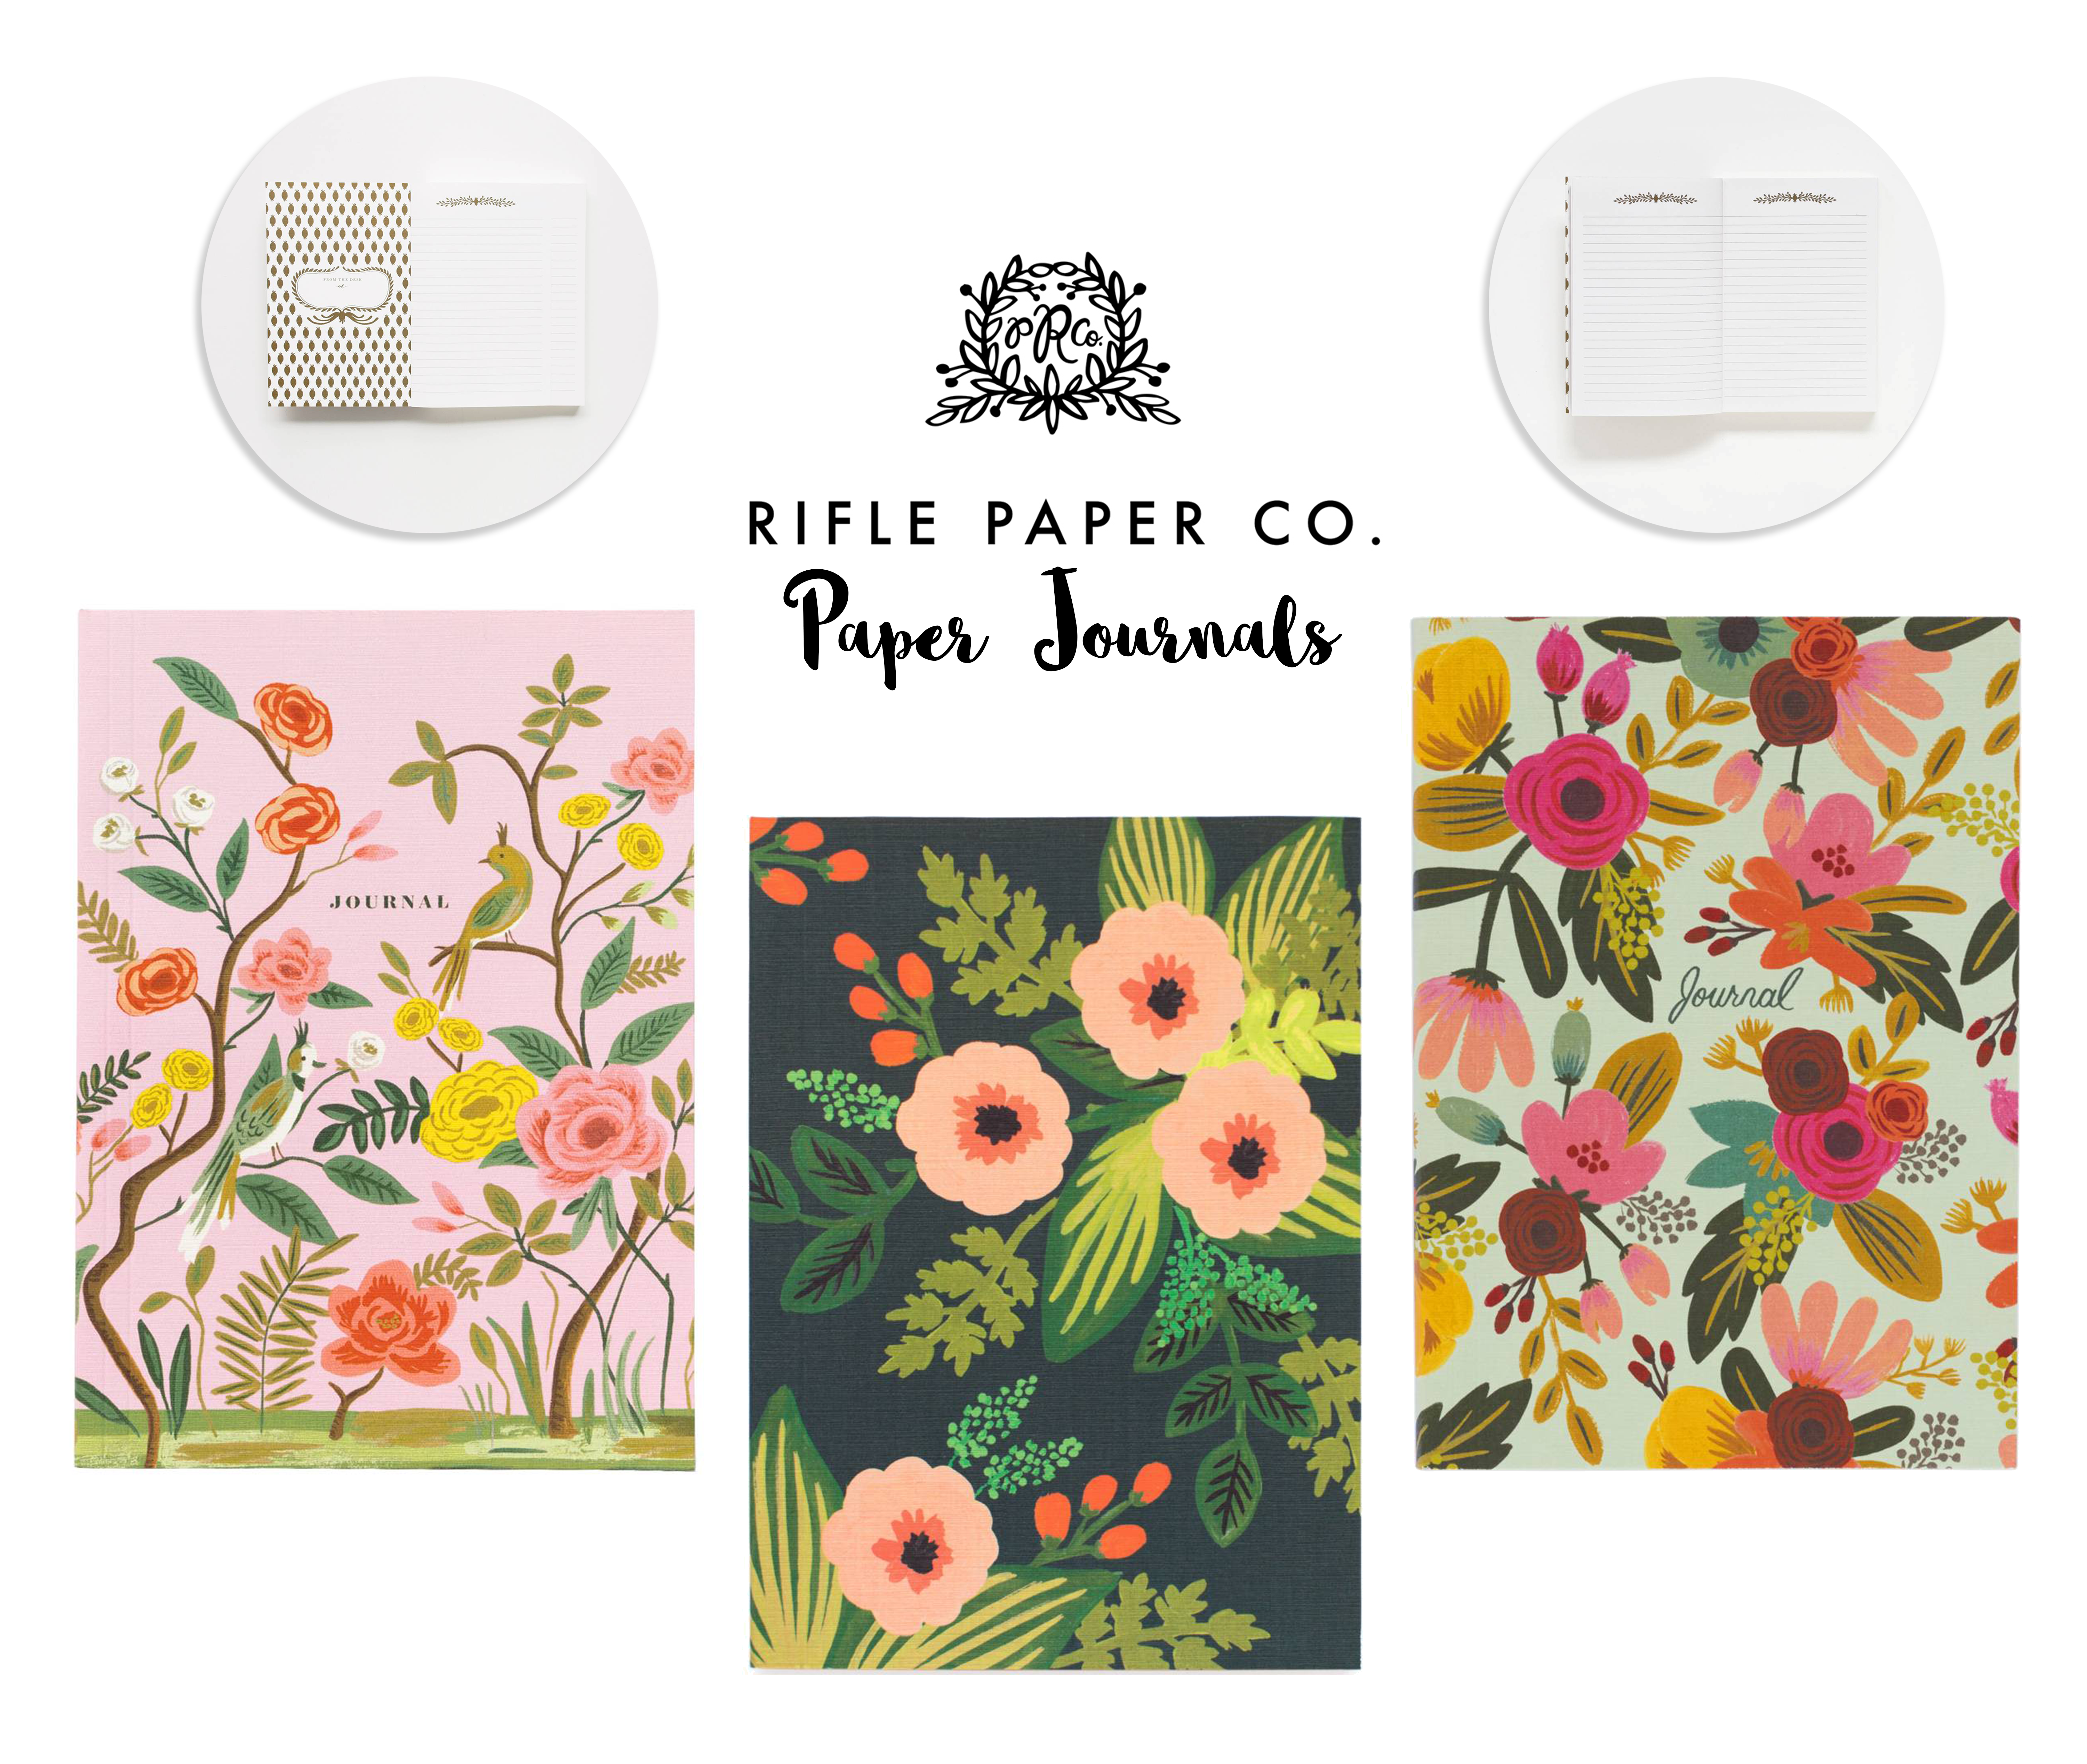 Rifle Paper Co. Paper Journals